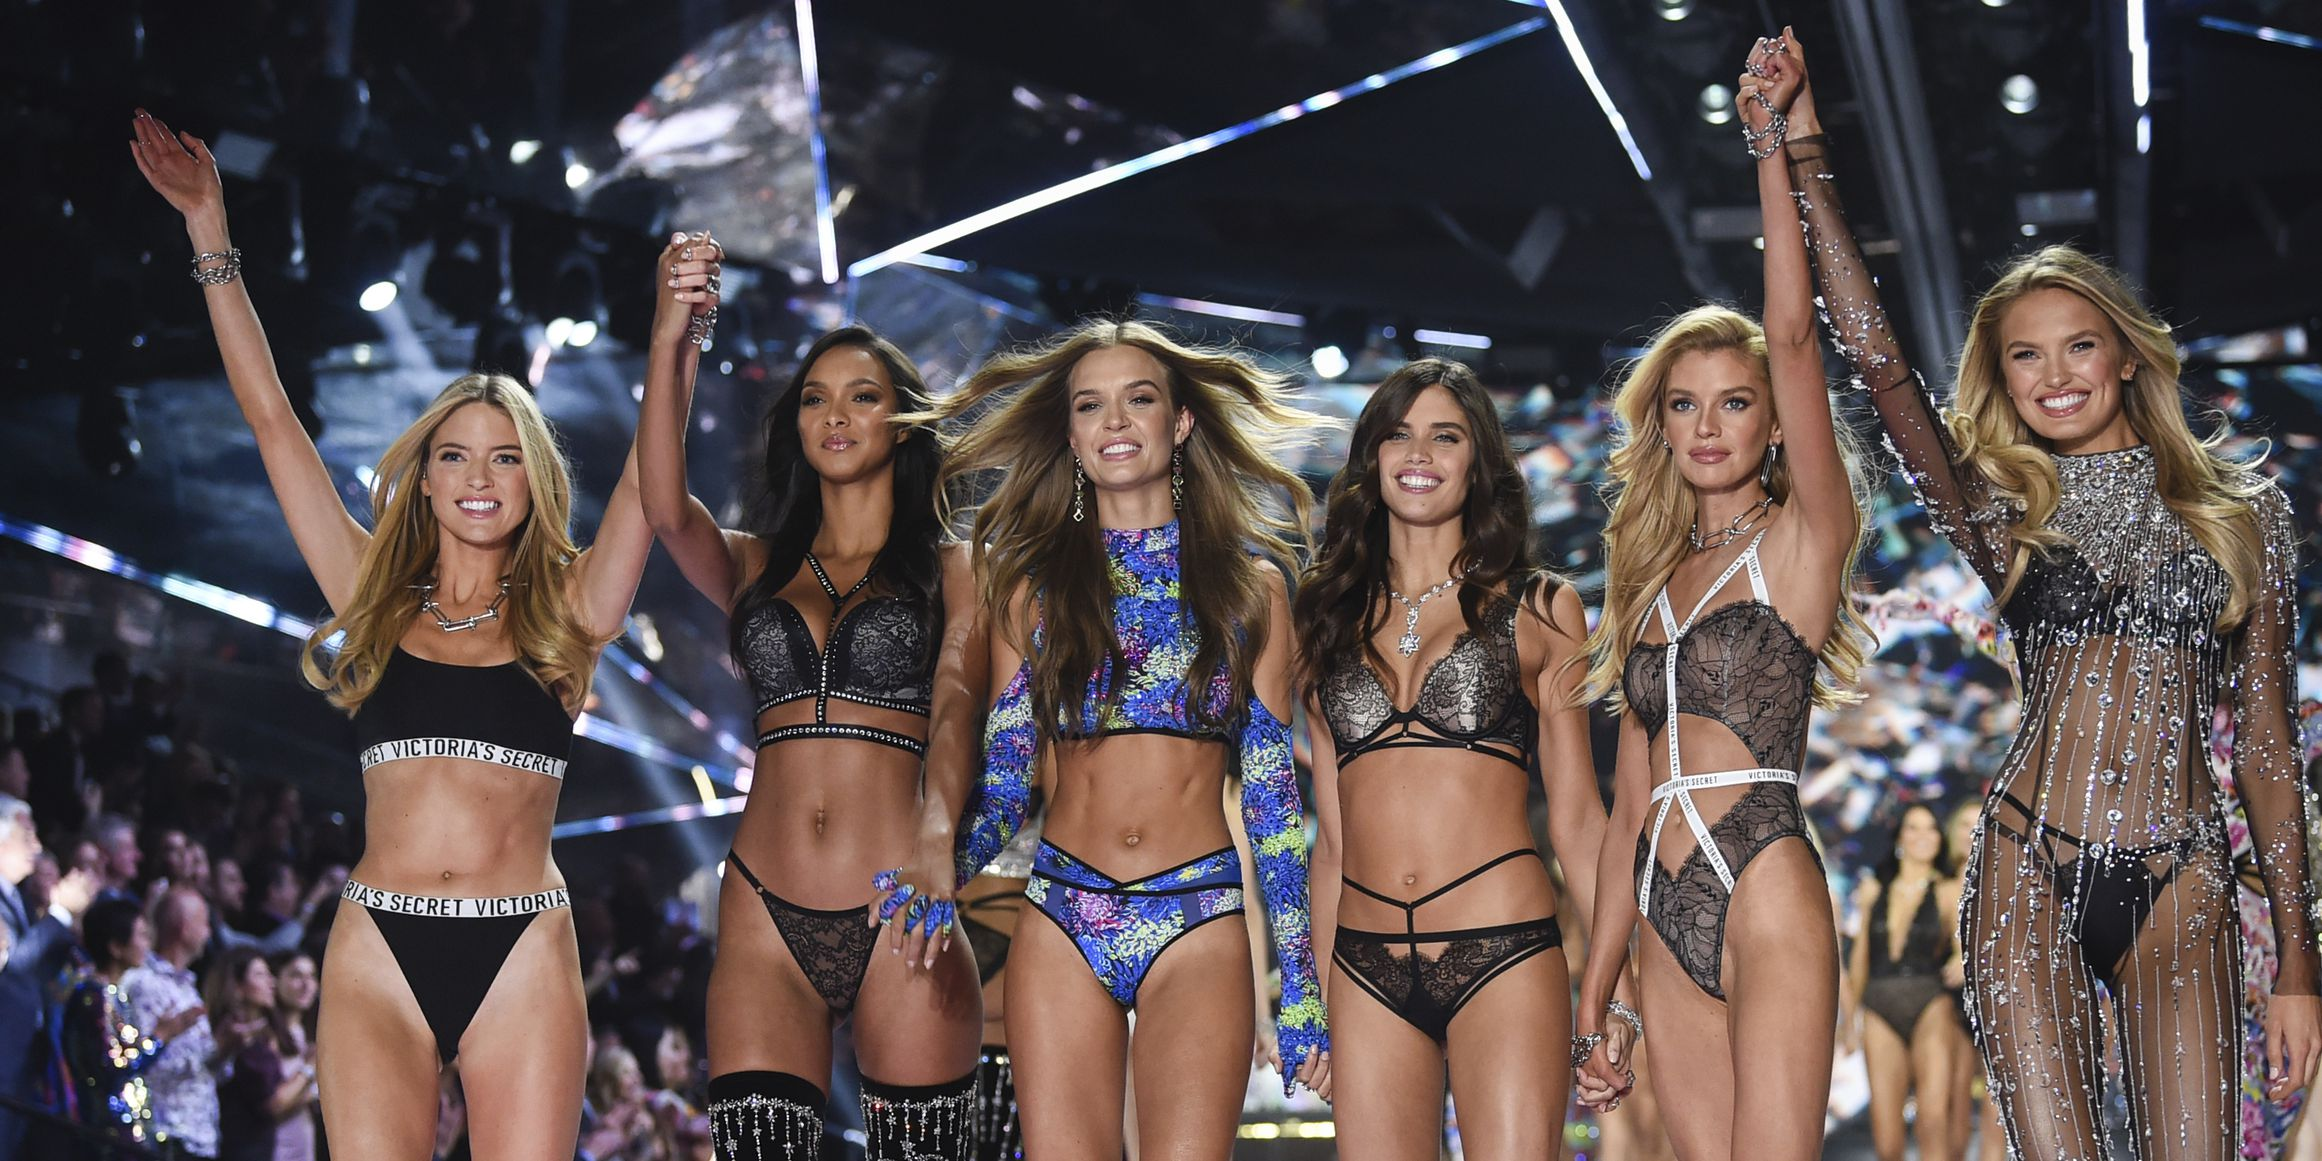 Victoria's Secret closing more than 50 stores across the U.S. and Canada